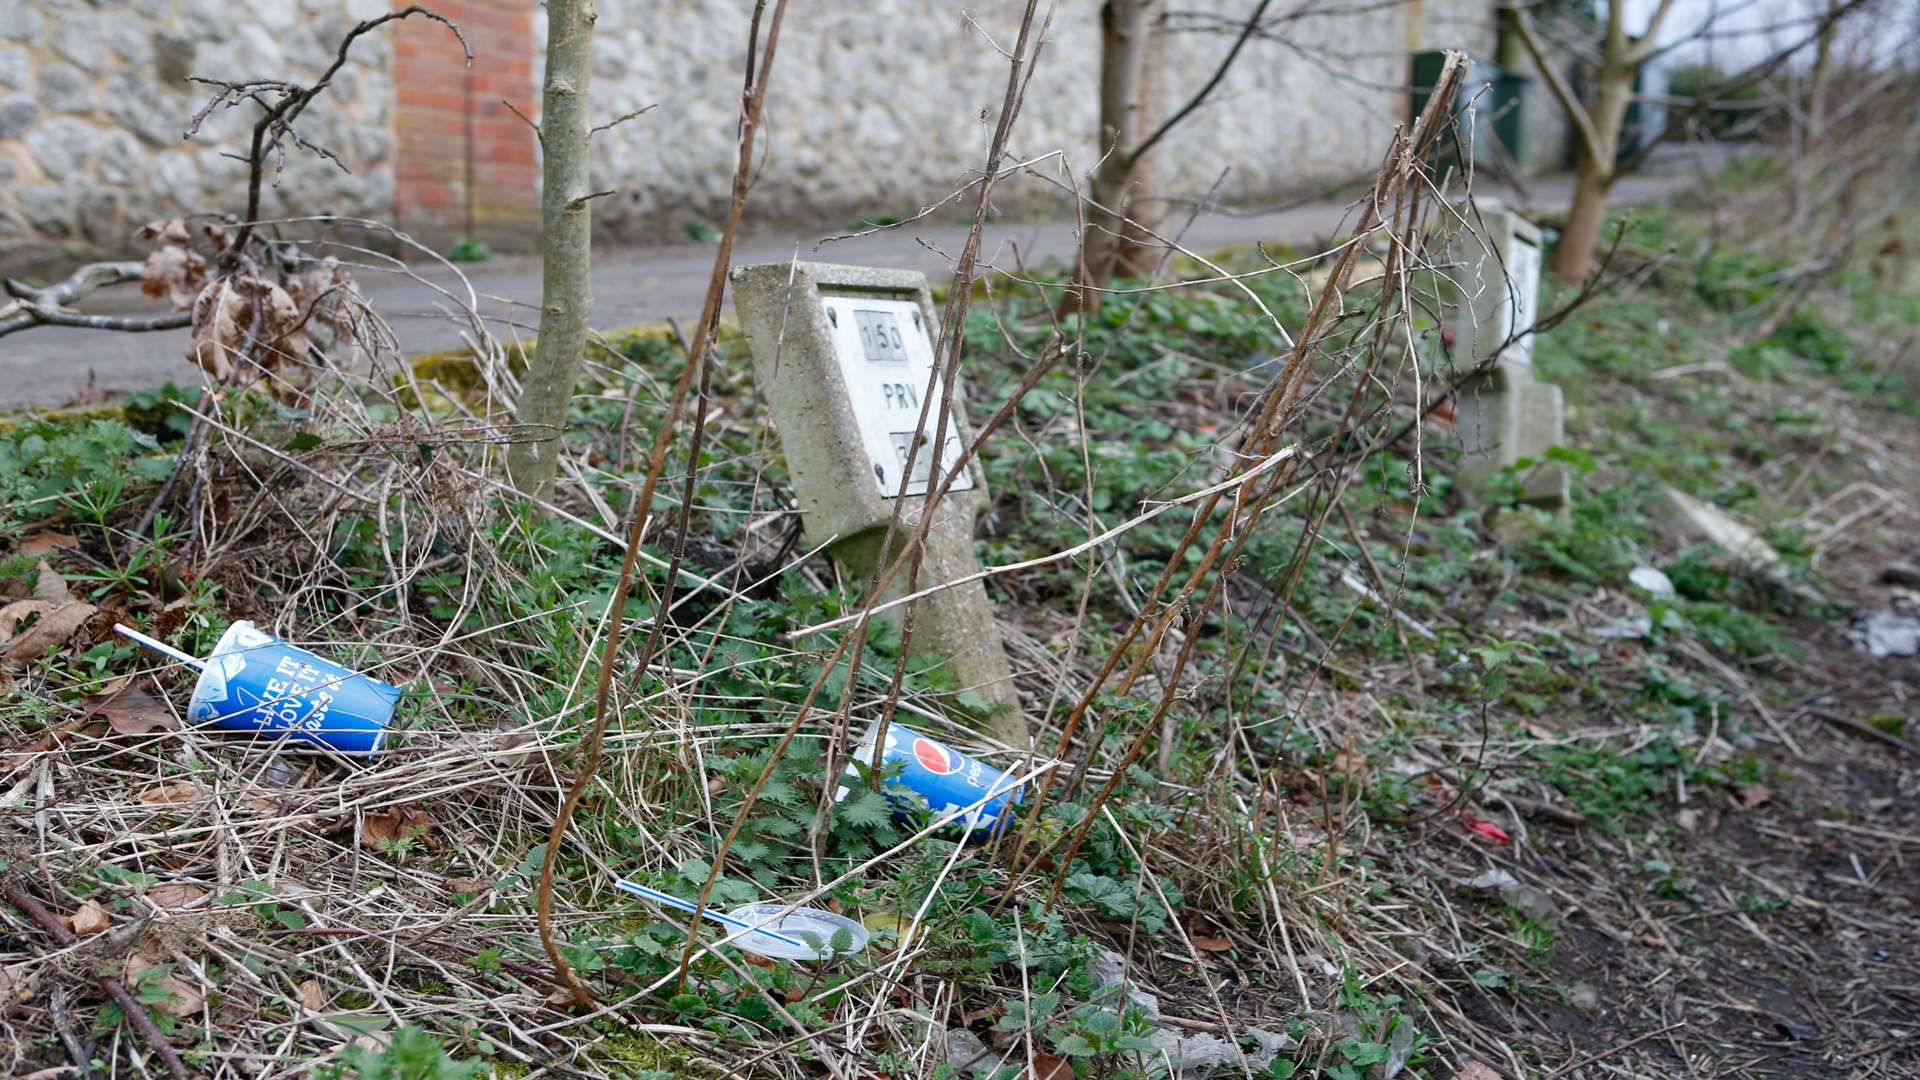 Litter like this on Sandling Road, Maidstone, is a blight onroads across the county